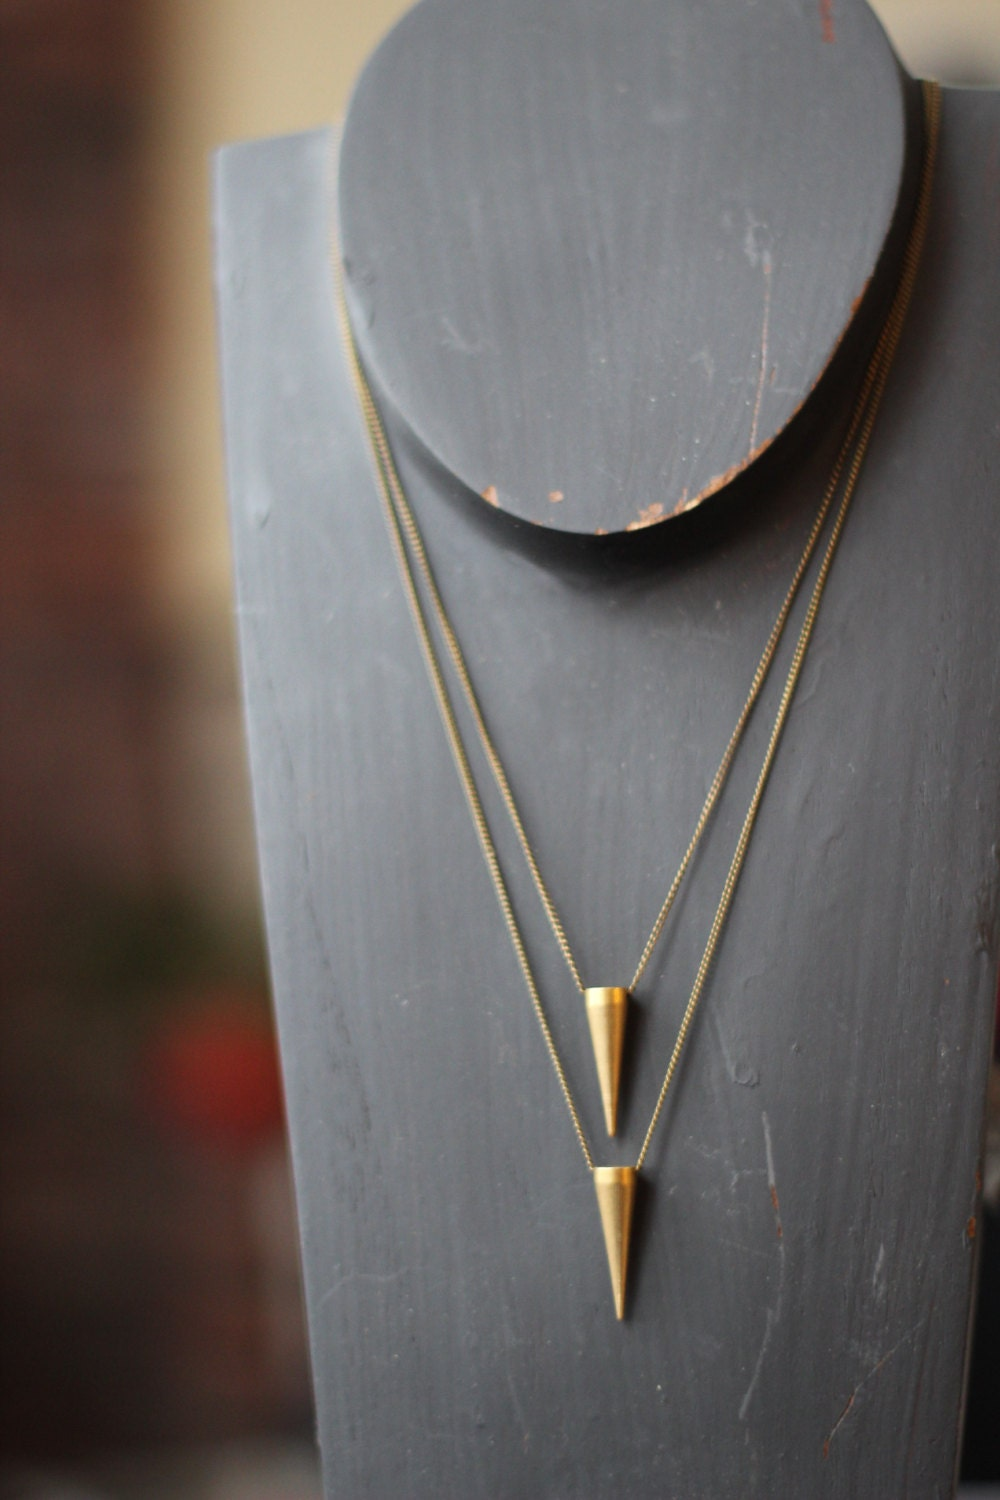 Pendulum Pendant Set - Solid Brass Spike - Tribal, Industrial  Necklace set - Raw Gold Matte Brass - Unisex - Gift Box - MySelvagedLife